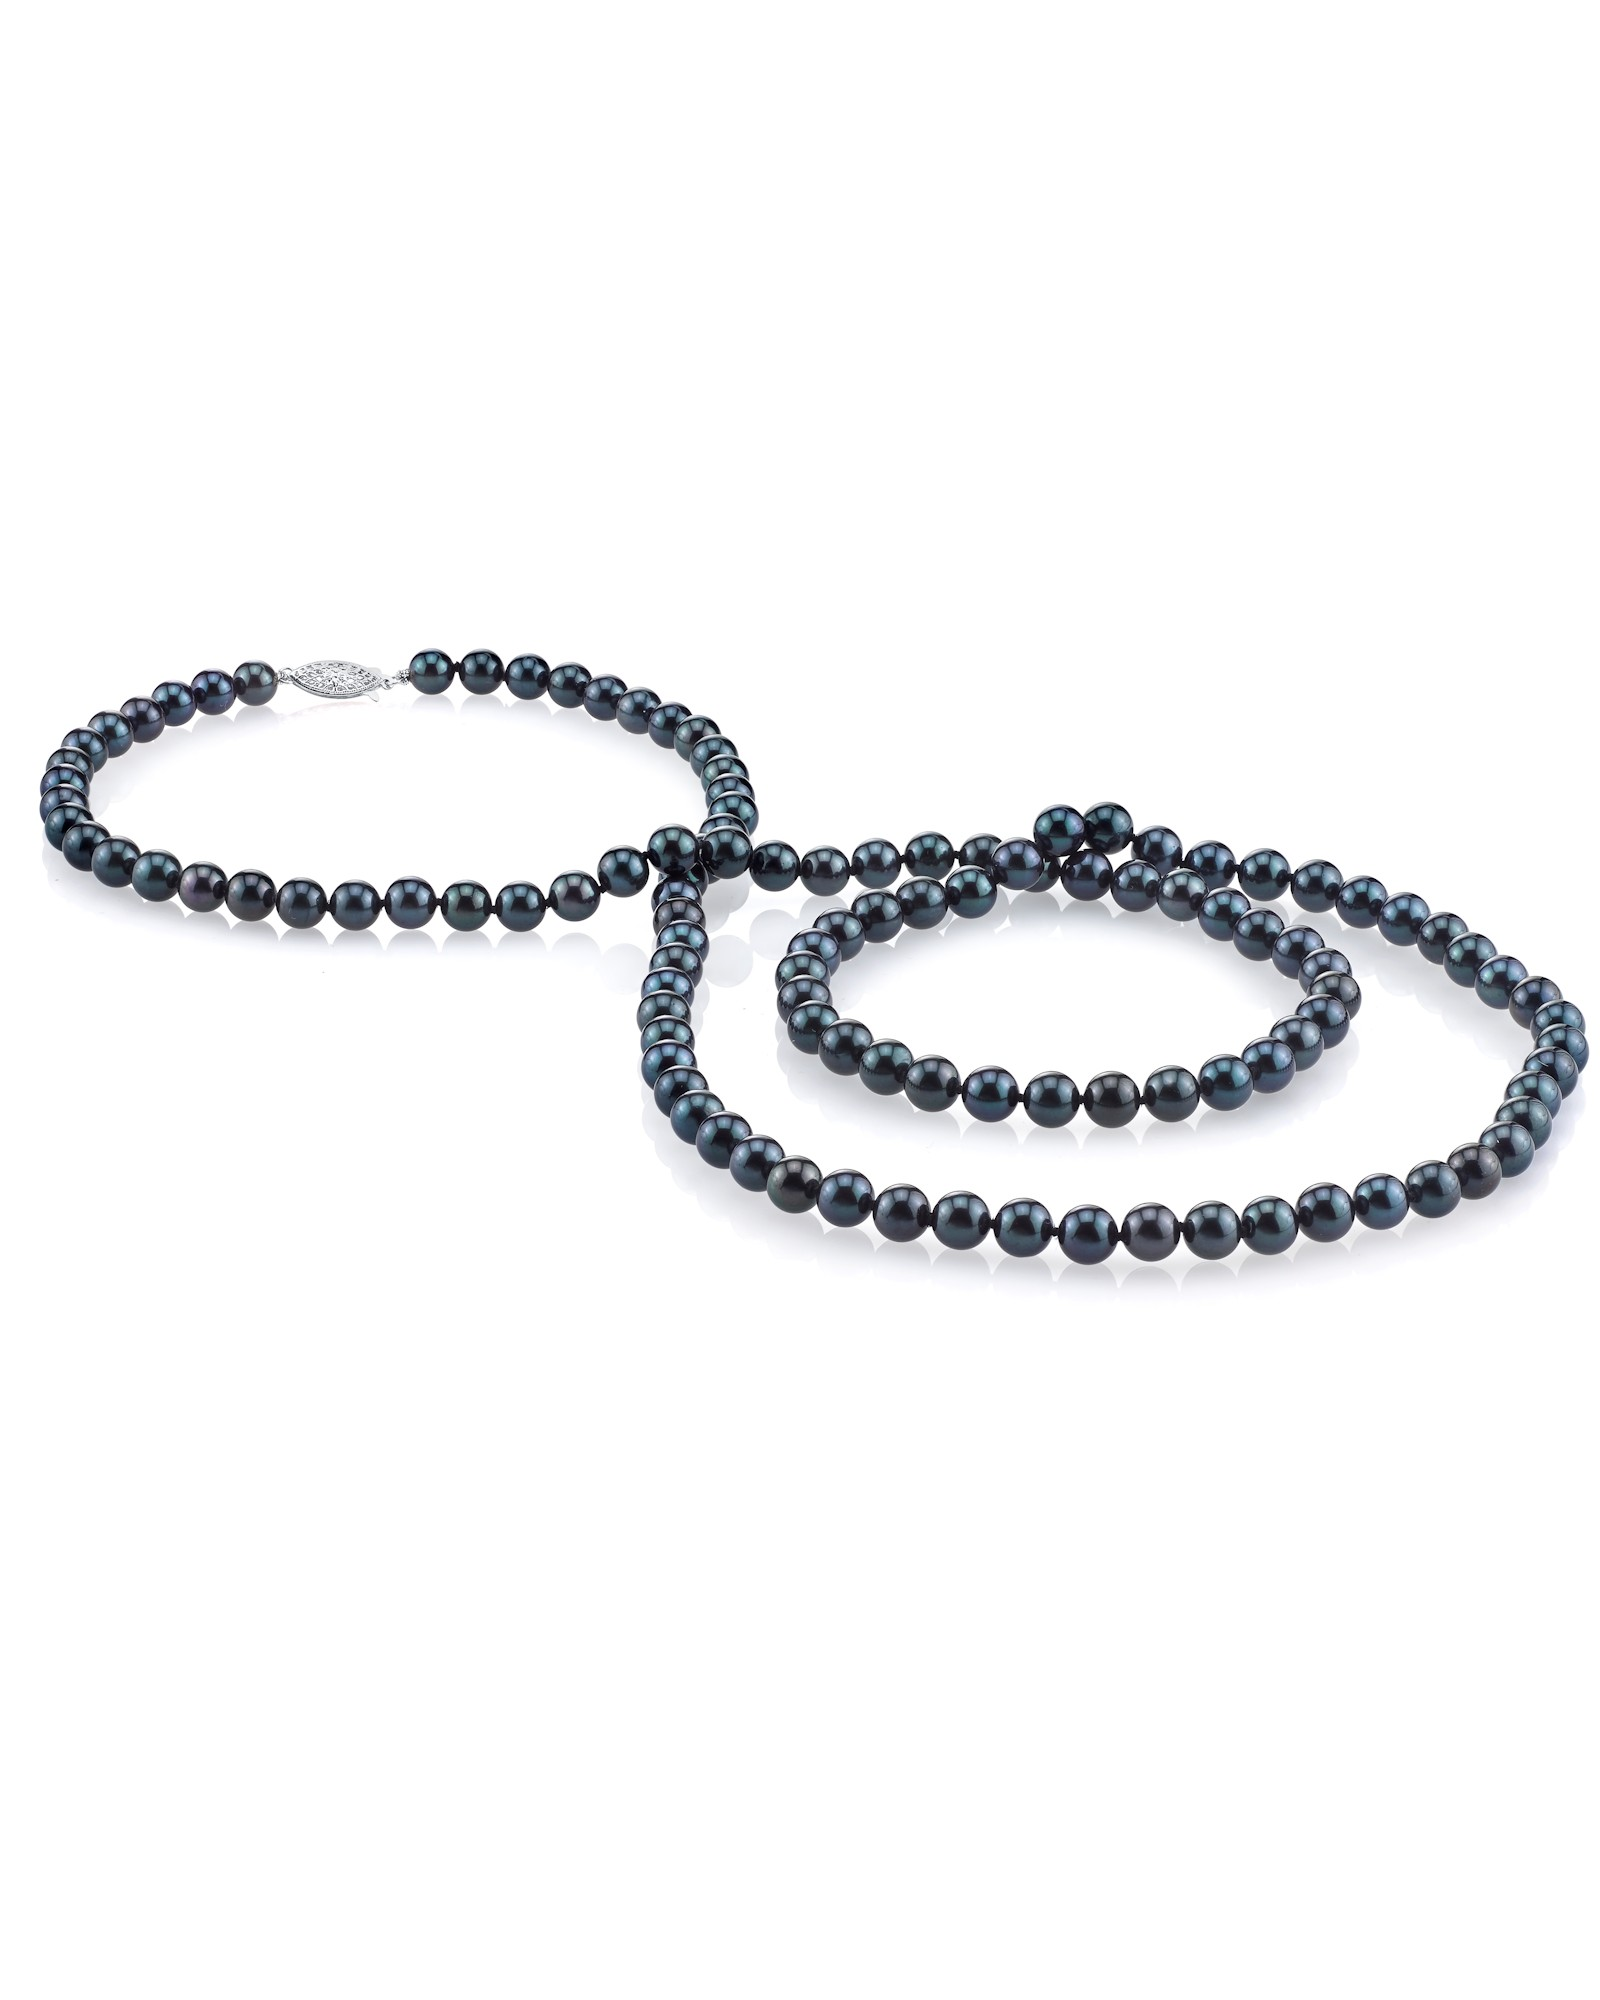 """14K Gold 6.5-7.0mm Black Akoya Cultured Pearl Necklace AA+ Quality, 36"""" Opera Length by The Pearl Source"""